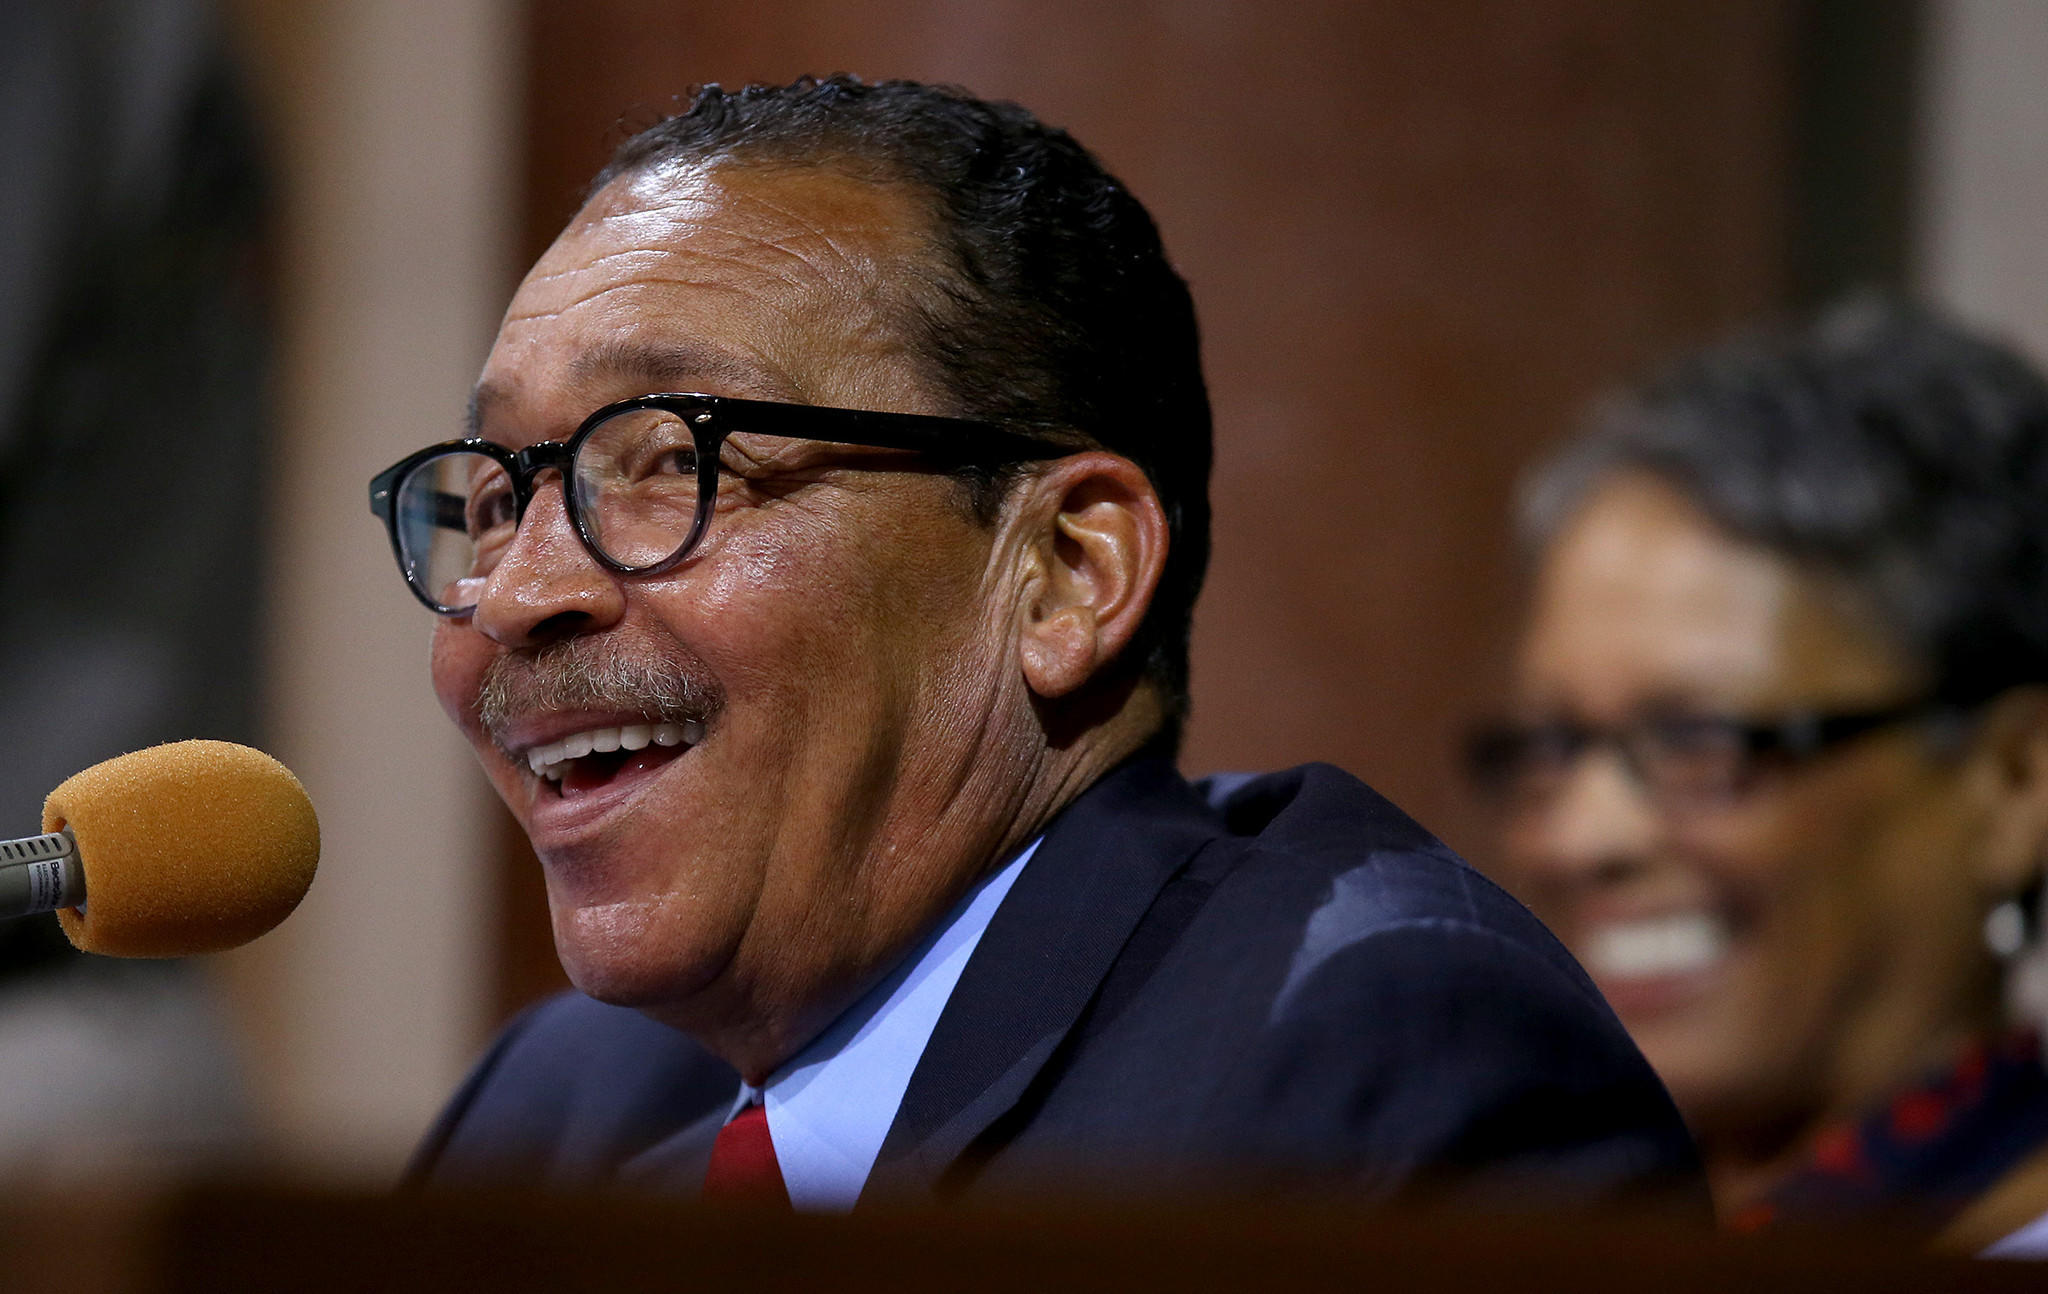 The Los Angeles City Council voted unanimously Tuesday to plug a financing gap that threatened community programs once paid for with federal dollars. Above, a file photo of council President Herb Wesson.